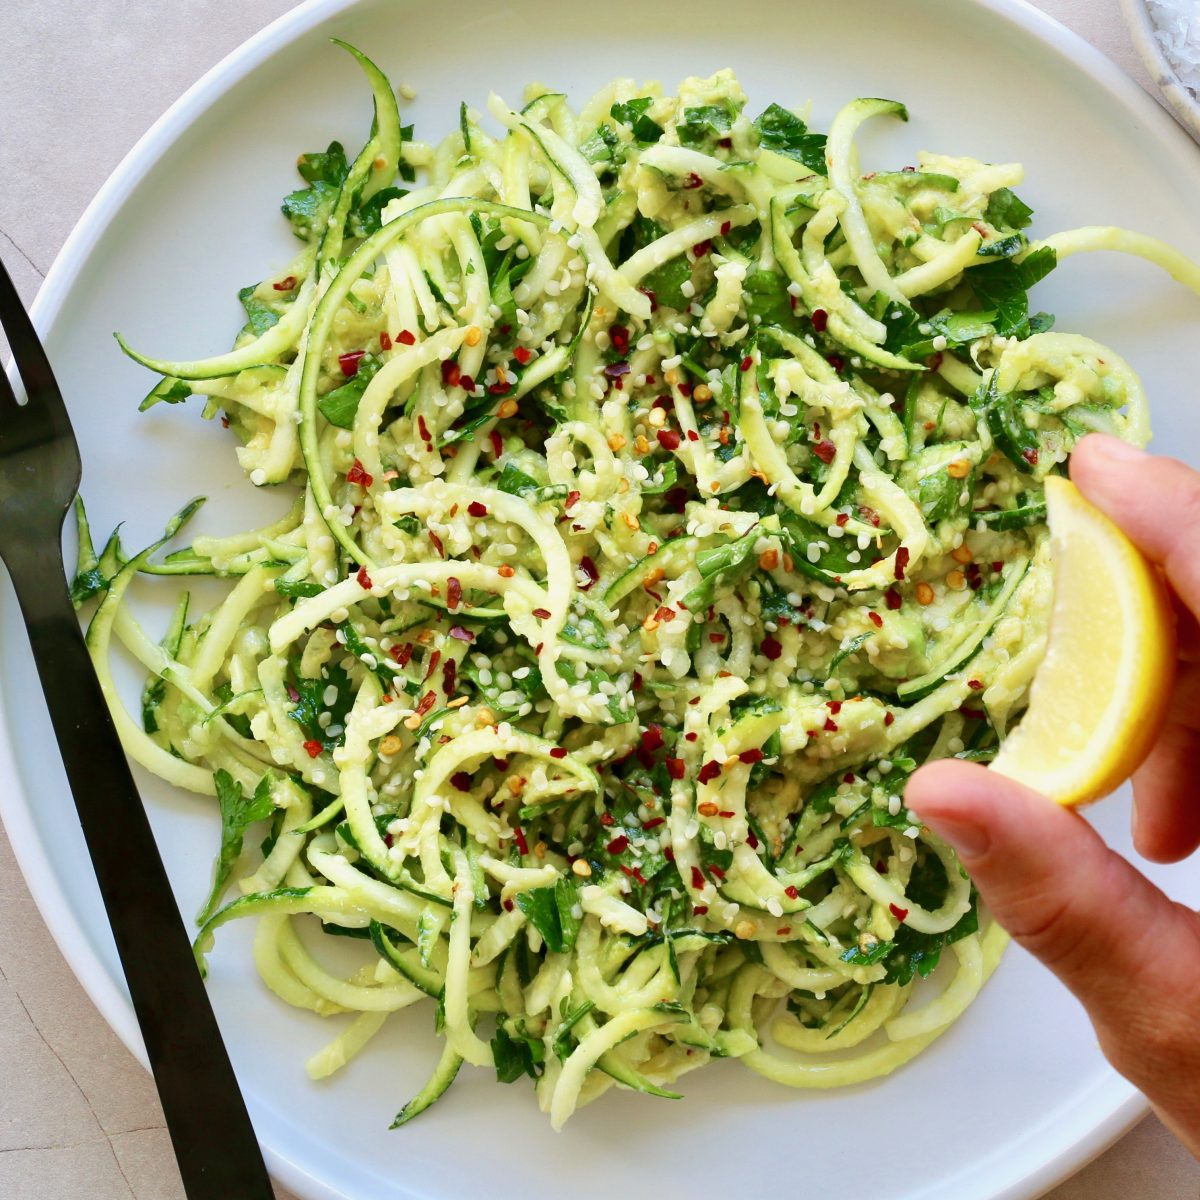 Hemp Seed and Avocado Pasta | Cocolife non-aerosol Avocado Oil Spray